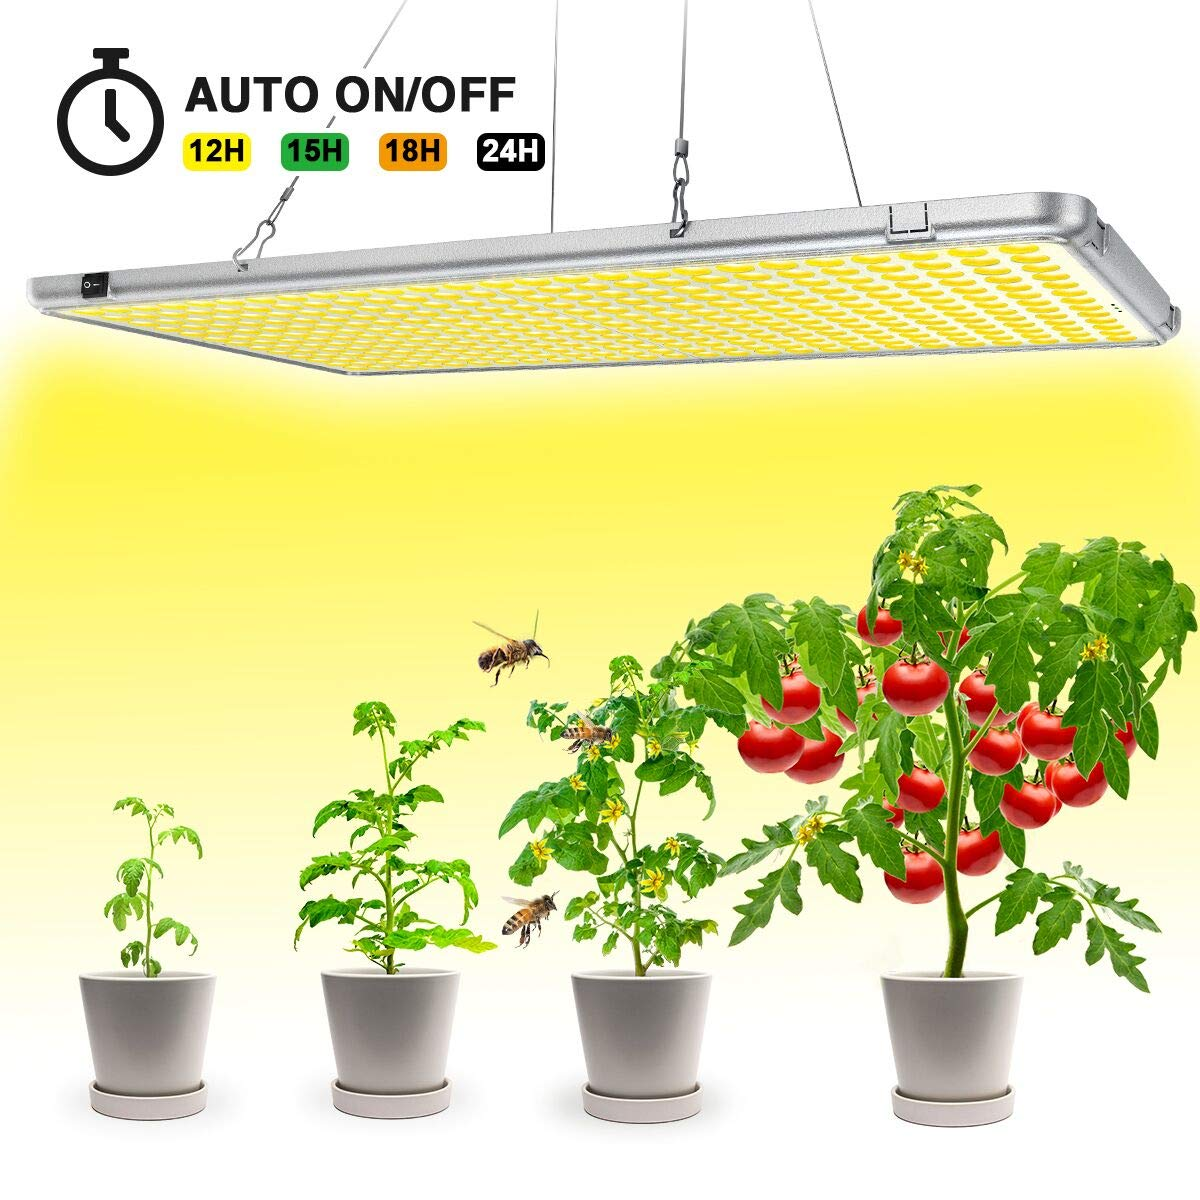 Bozily Led Grow Lights for Indoor Plants Full Spectrum 300W, Sunlike Plant Growing Light with Timer 12/15/18/24H Auto On Off for Indoor Plants Seedlings,Growing,Blooming and Fruiting Oversized 338Leds by Bozily